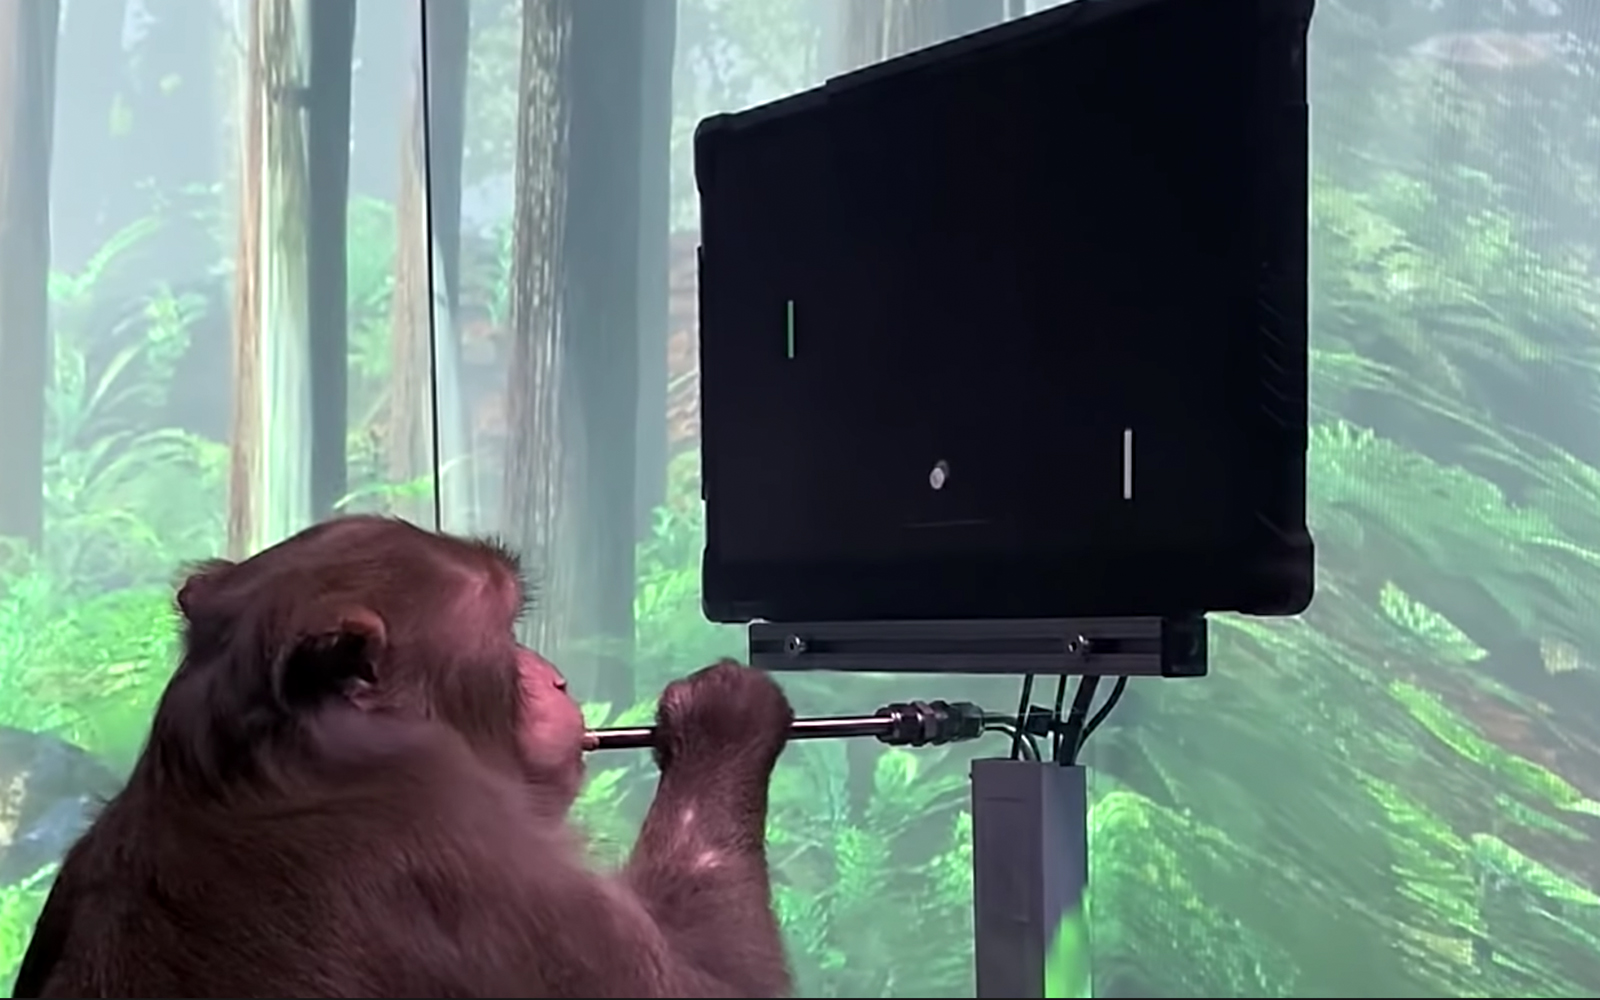 WATCH: Elon Musk's Neuralink reveals monkey playing video game with brain implant